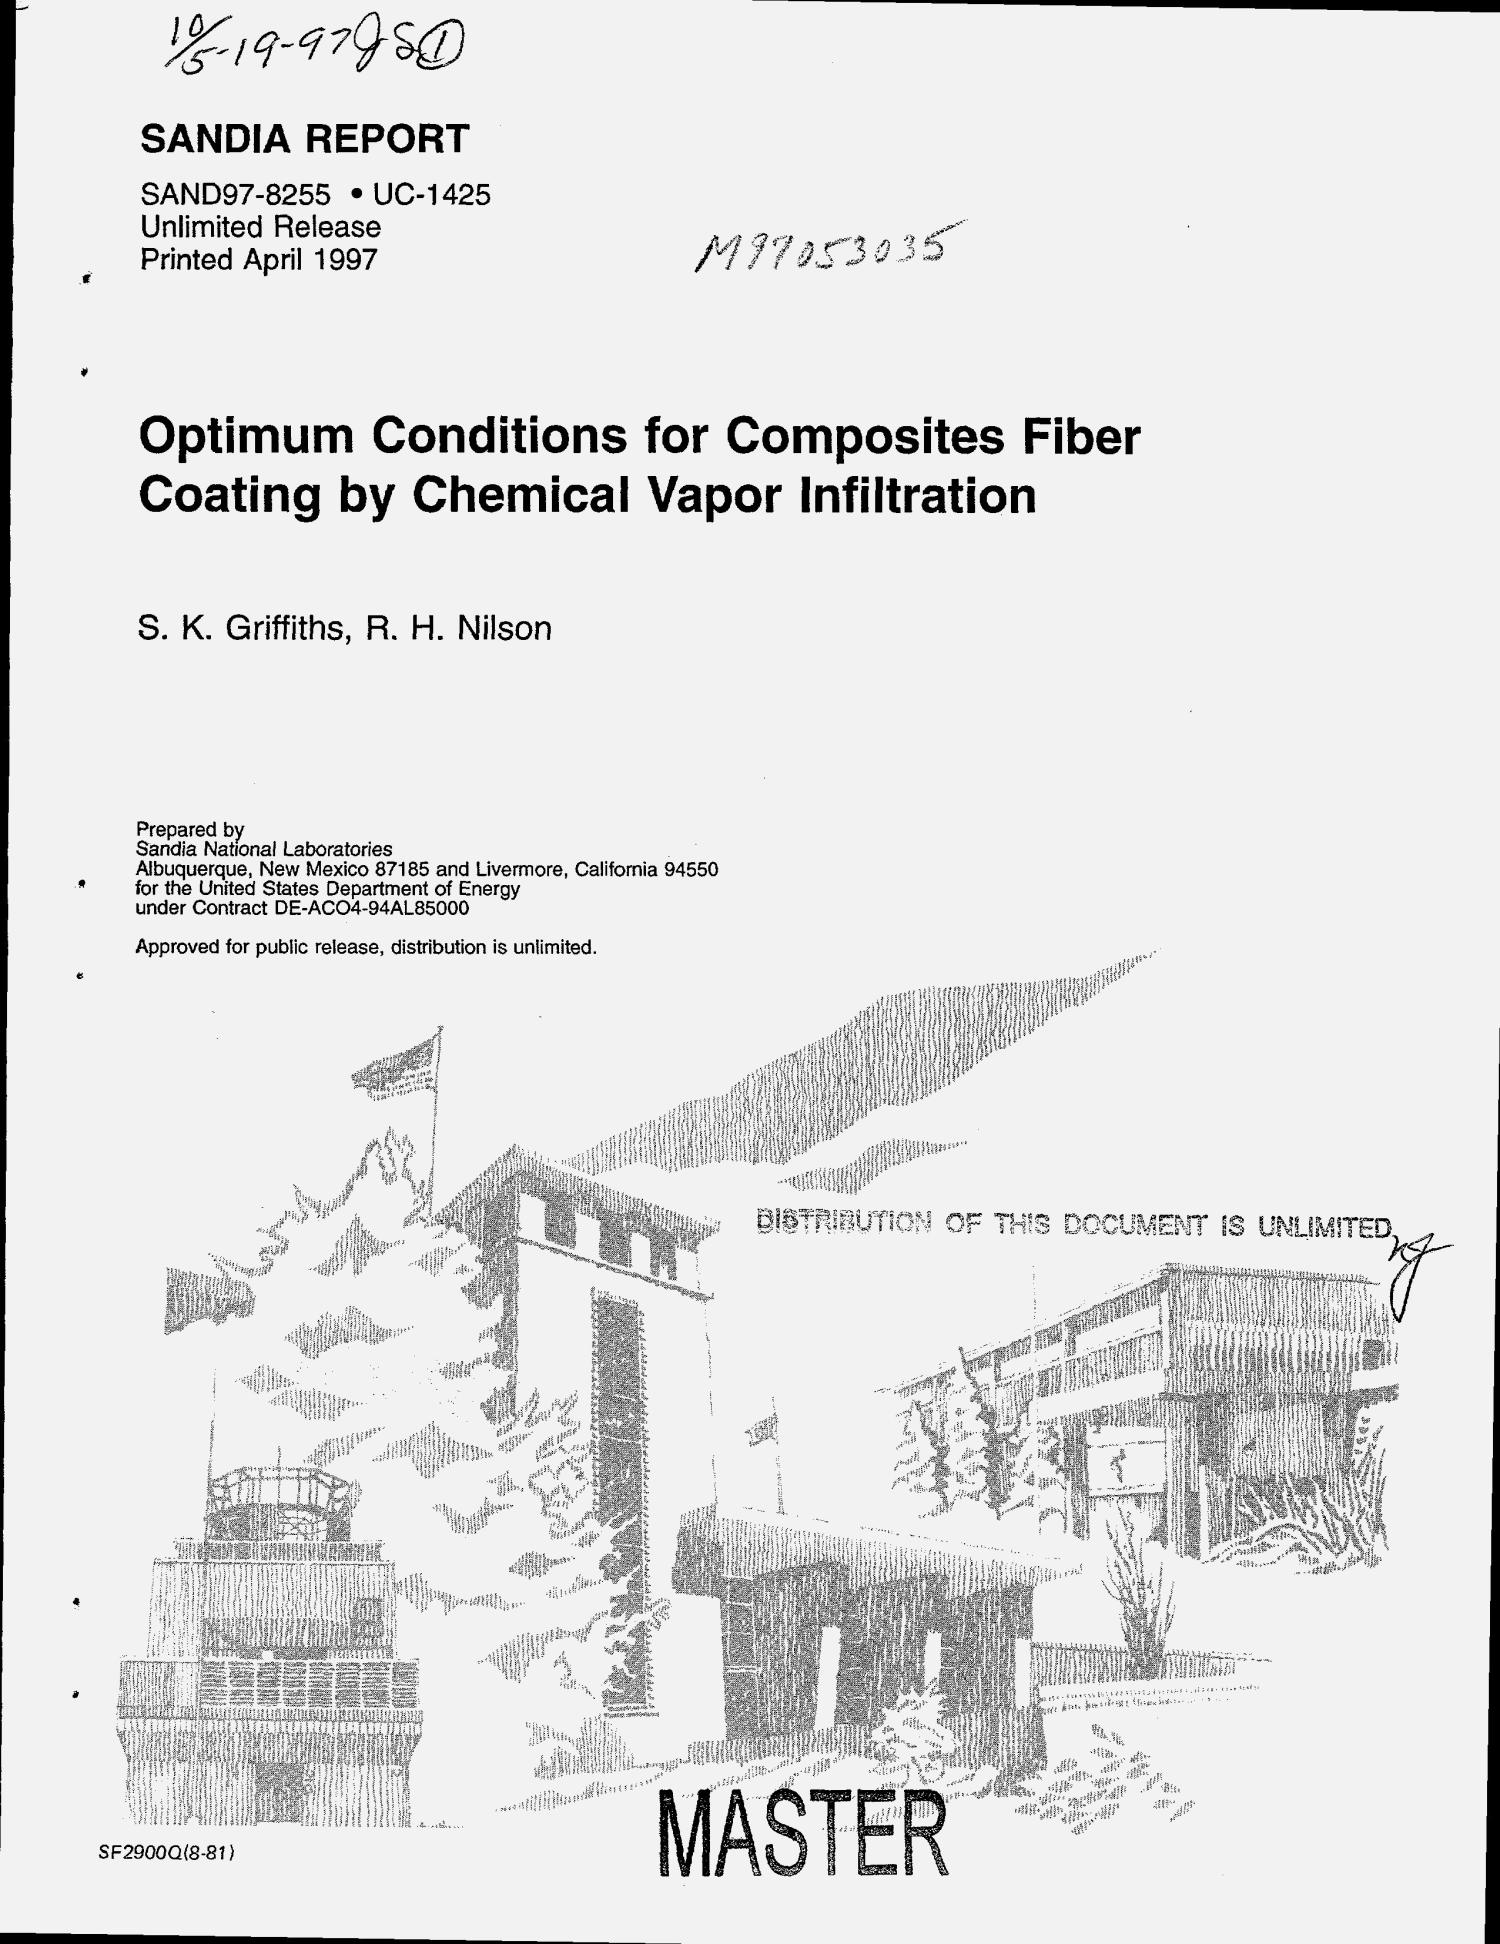 Optimum conditions for composites fiber coating by chemical vapor infiltration                                                                                                      [Sequence #]: 1 of 20